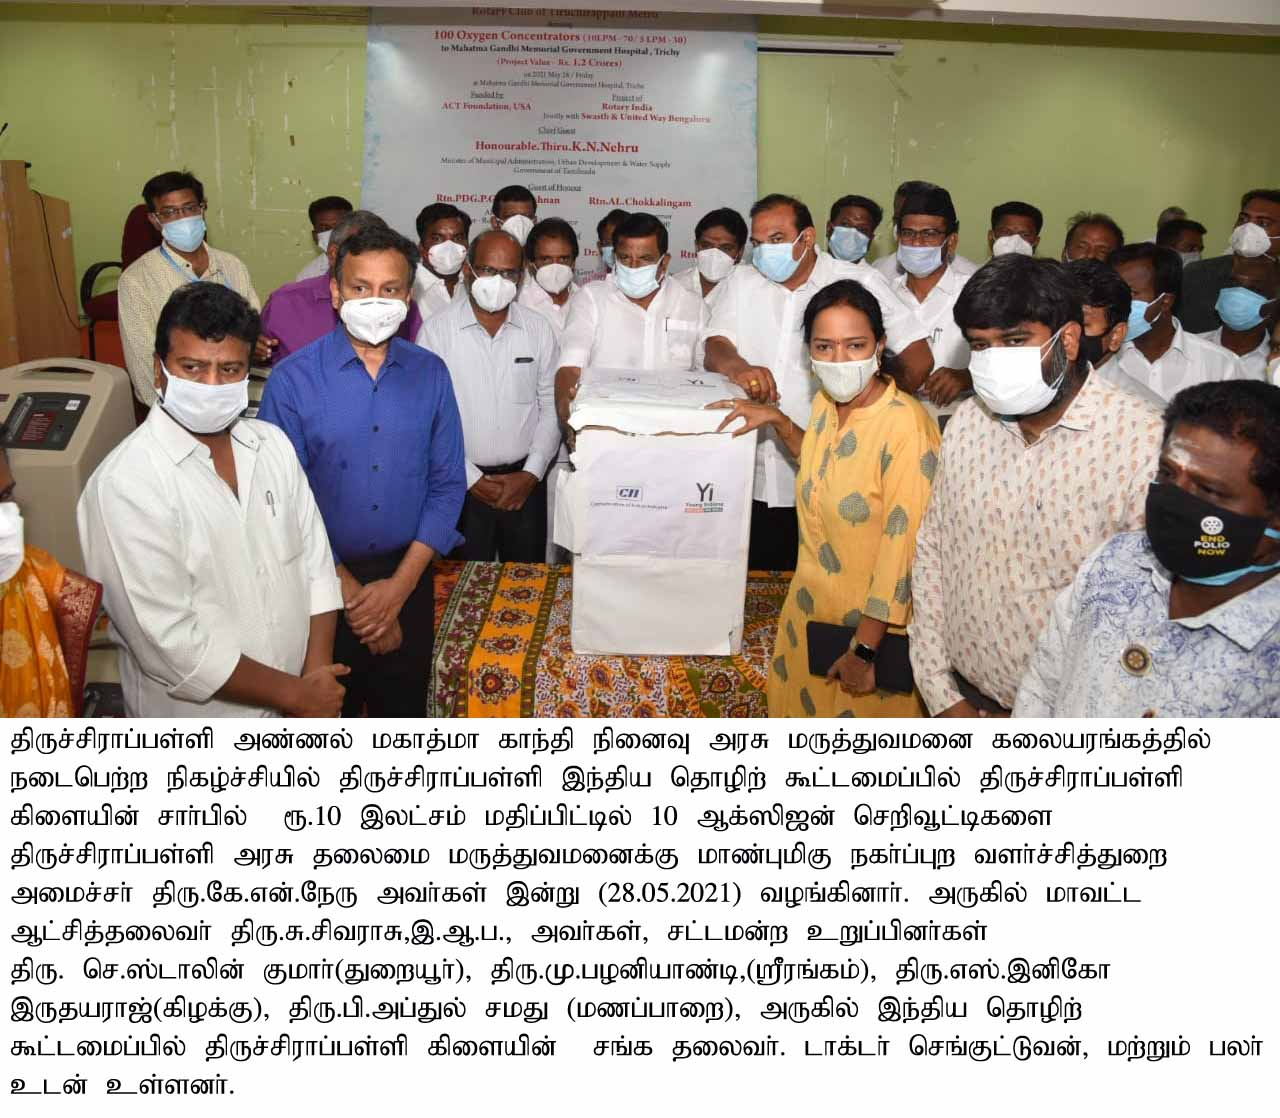 Hon'ble Urban Development Minister Distributed Oxygen Concentrators to Tiruchirappalli GH on 28-05-2021 in the